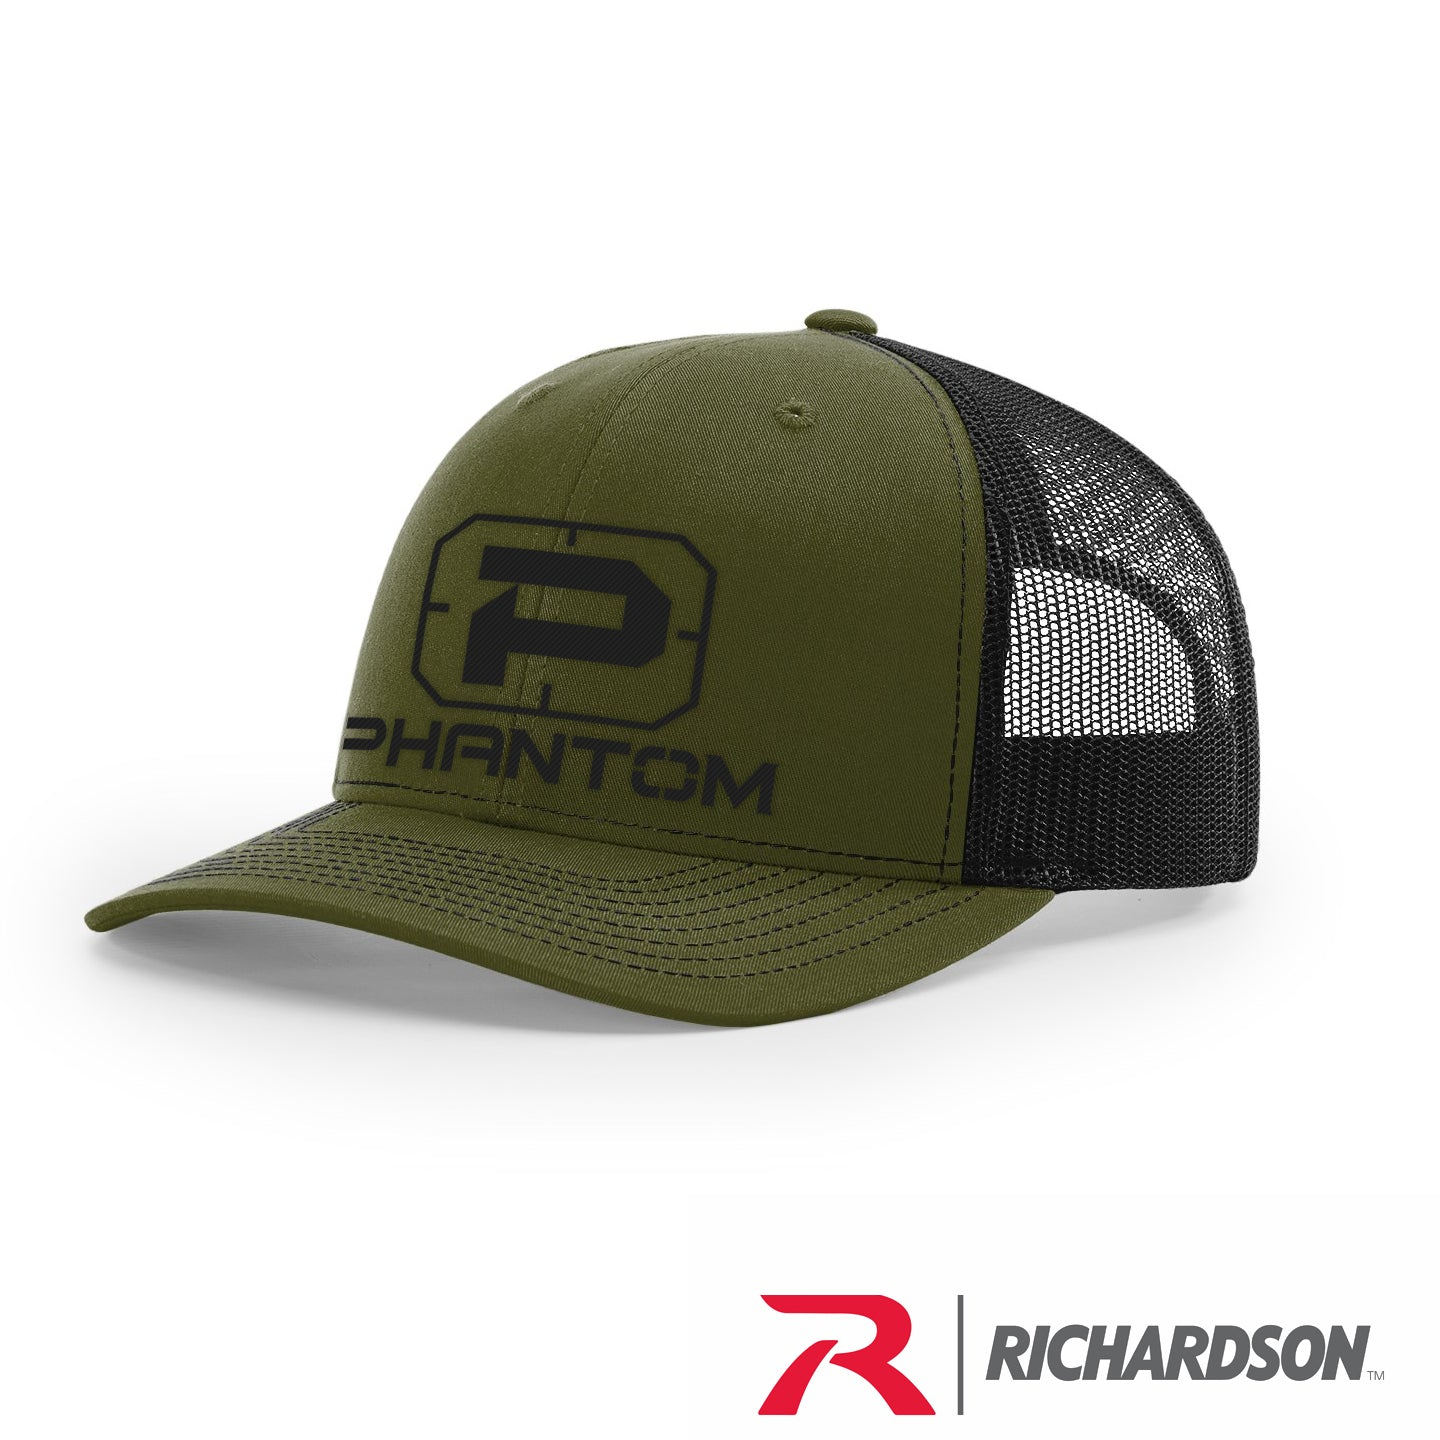 PHANTOM HUNTING RICHARDSON FLEXFIT FITTED HATS